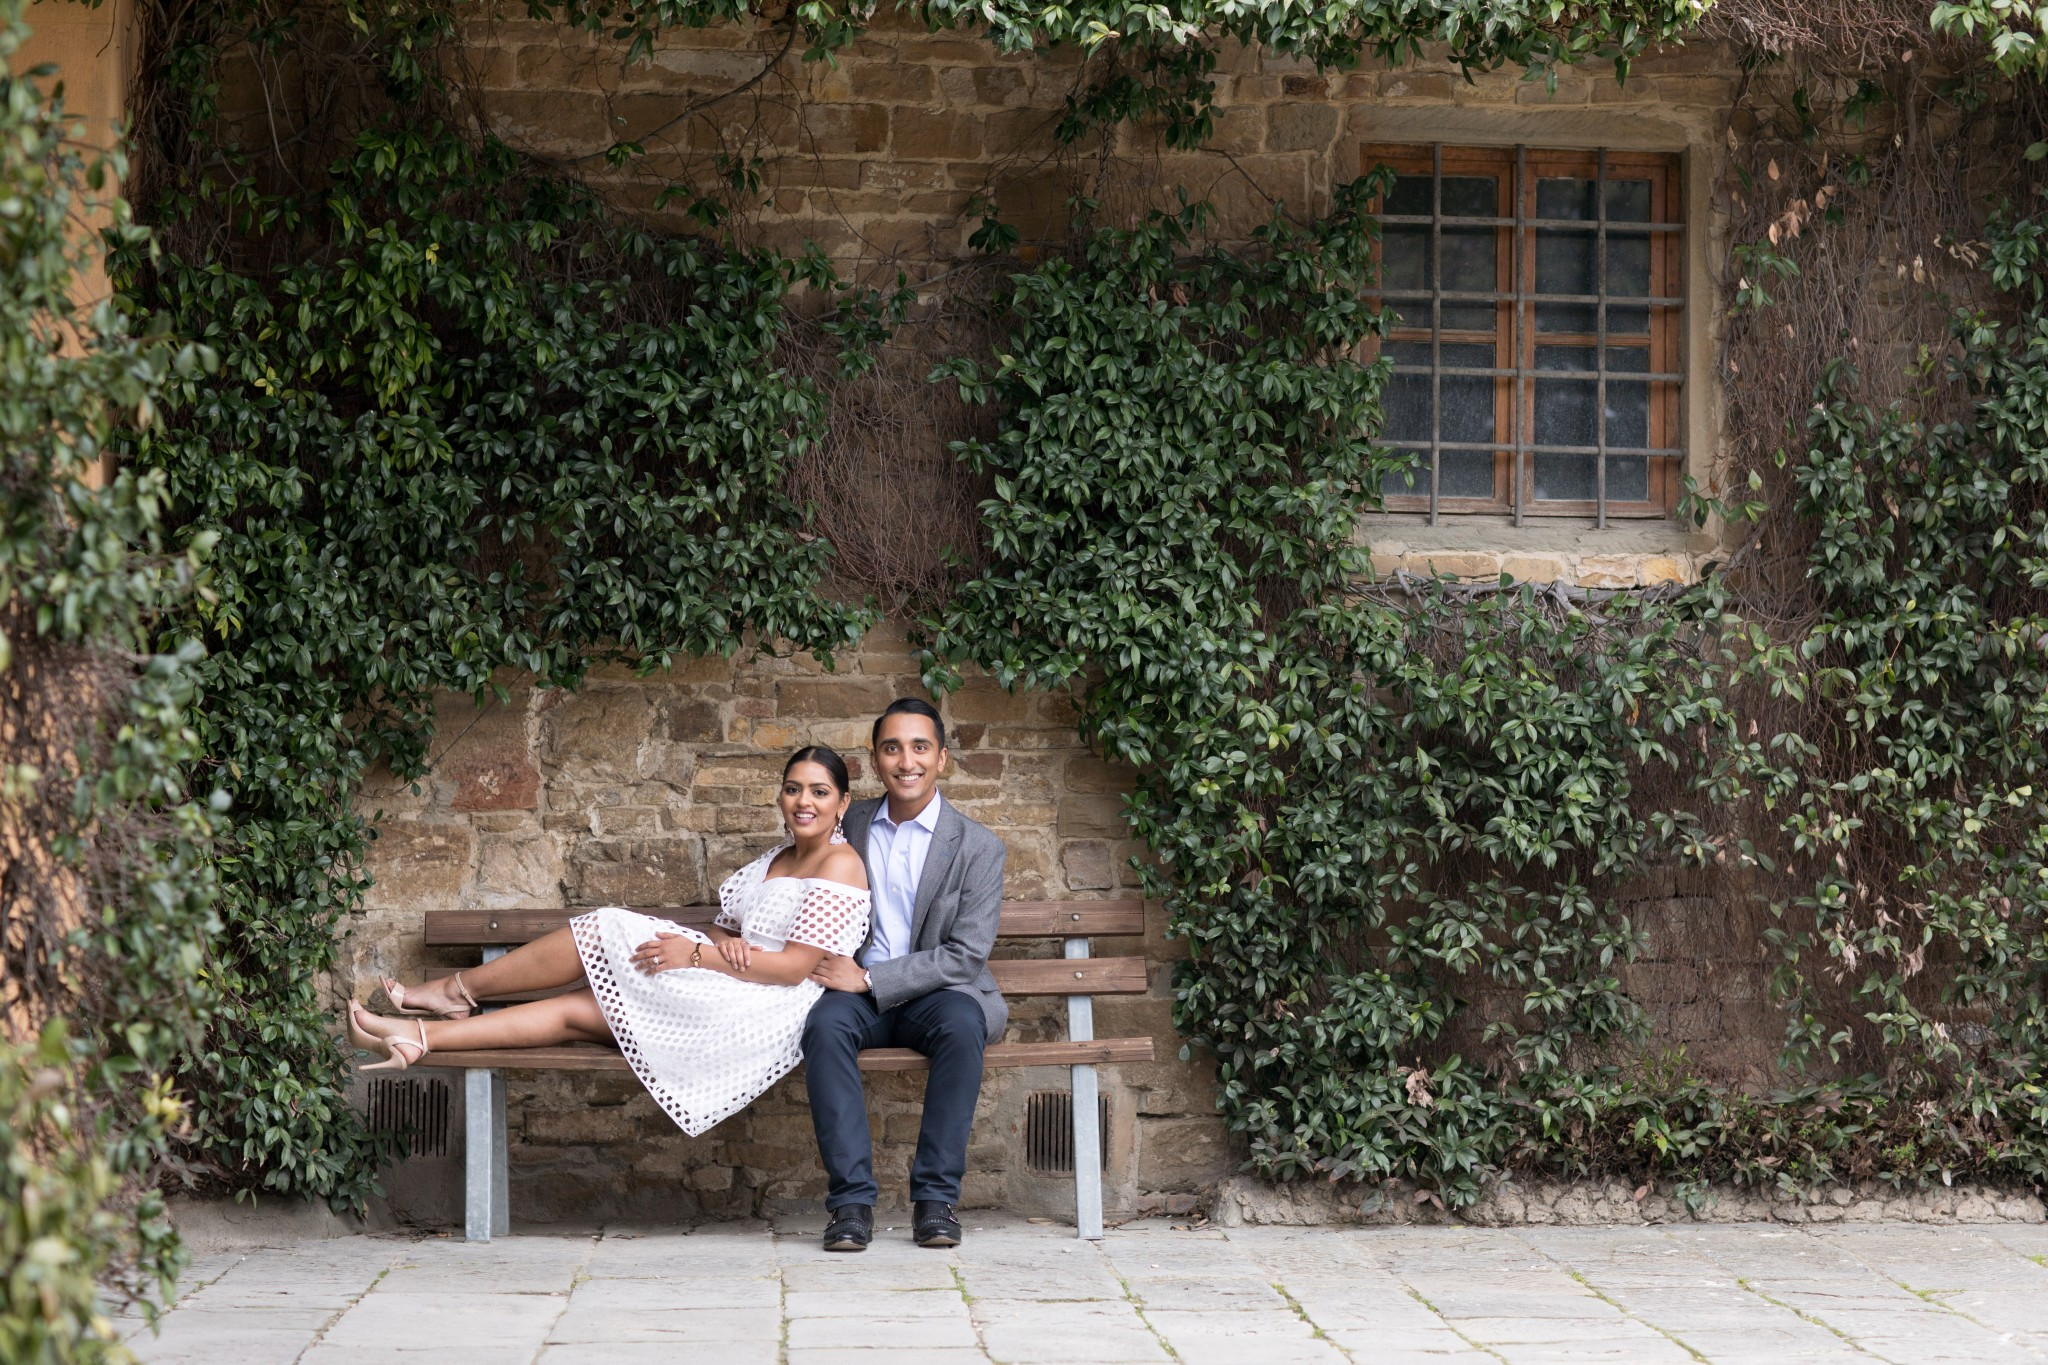 Romantic setting engagement in Florence